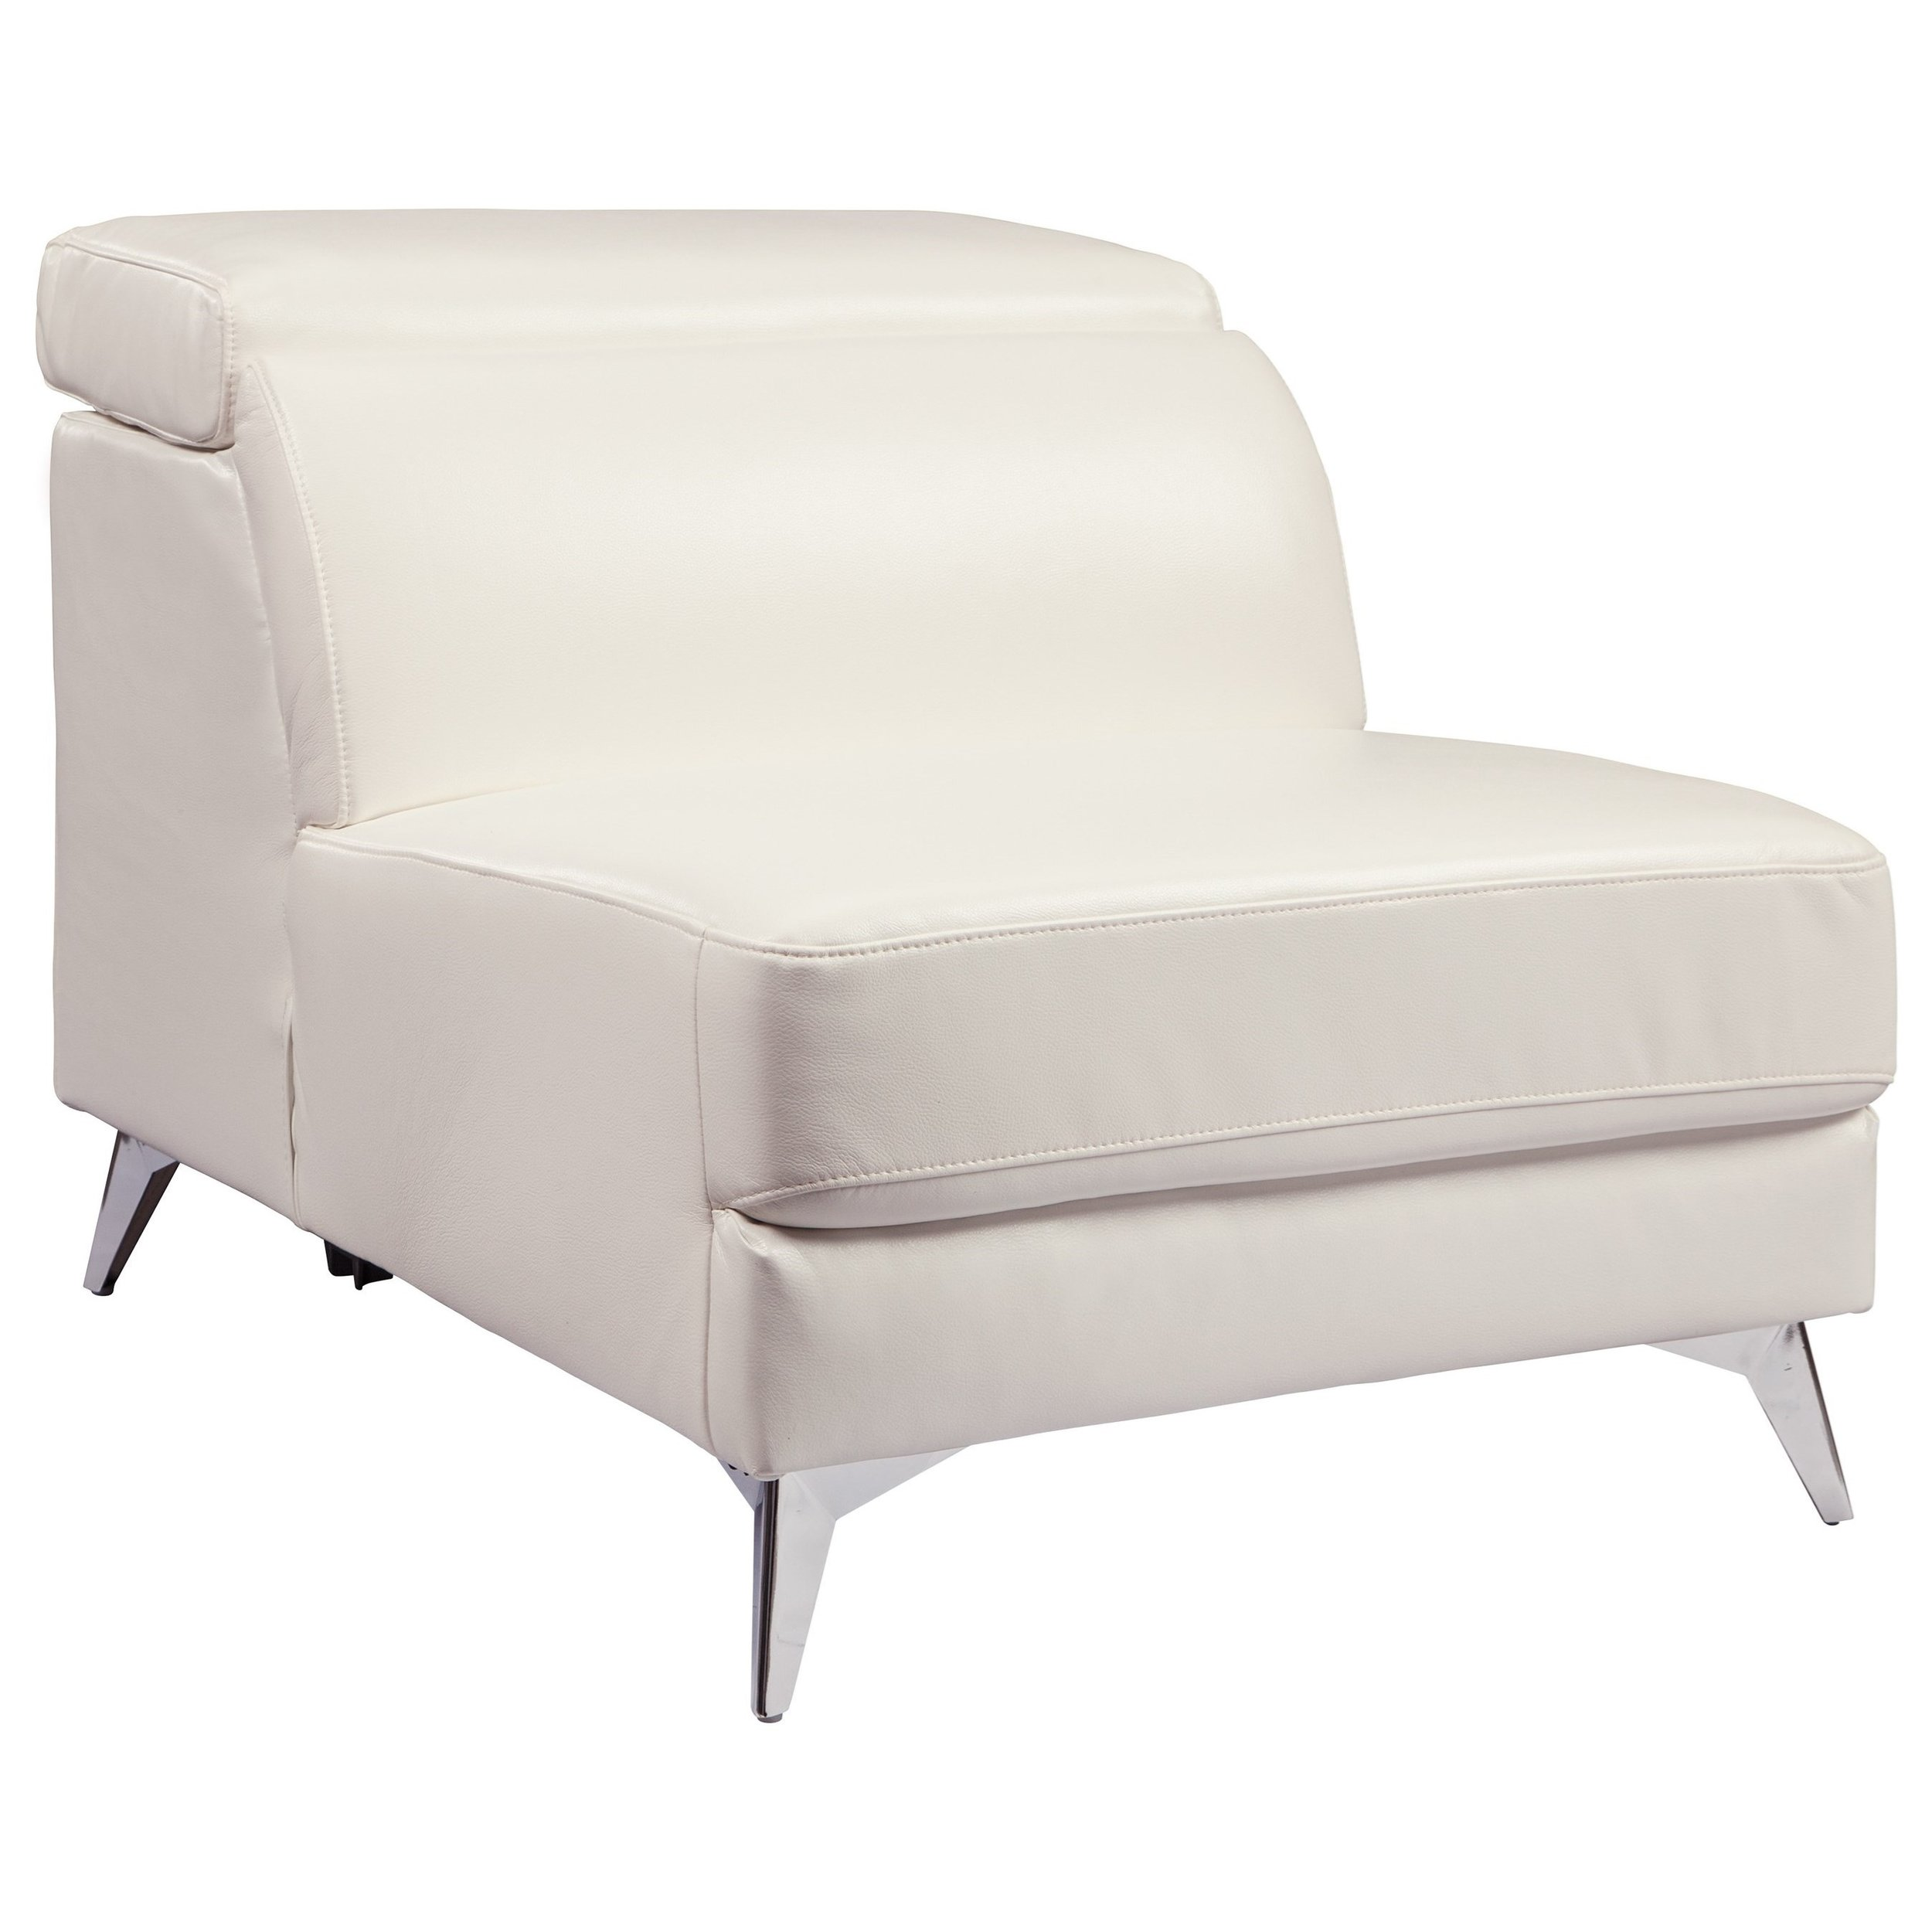 White Armless Side Chair with Adjustable Back 2.jpg